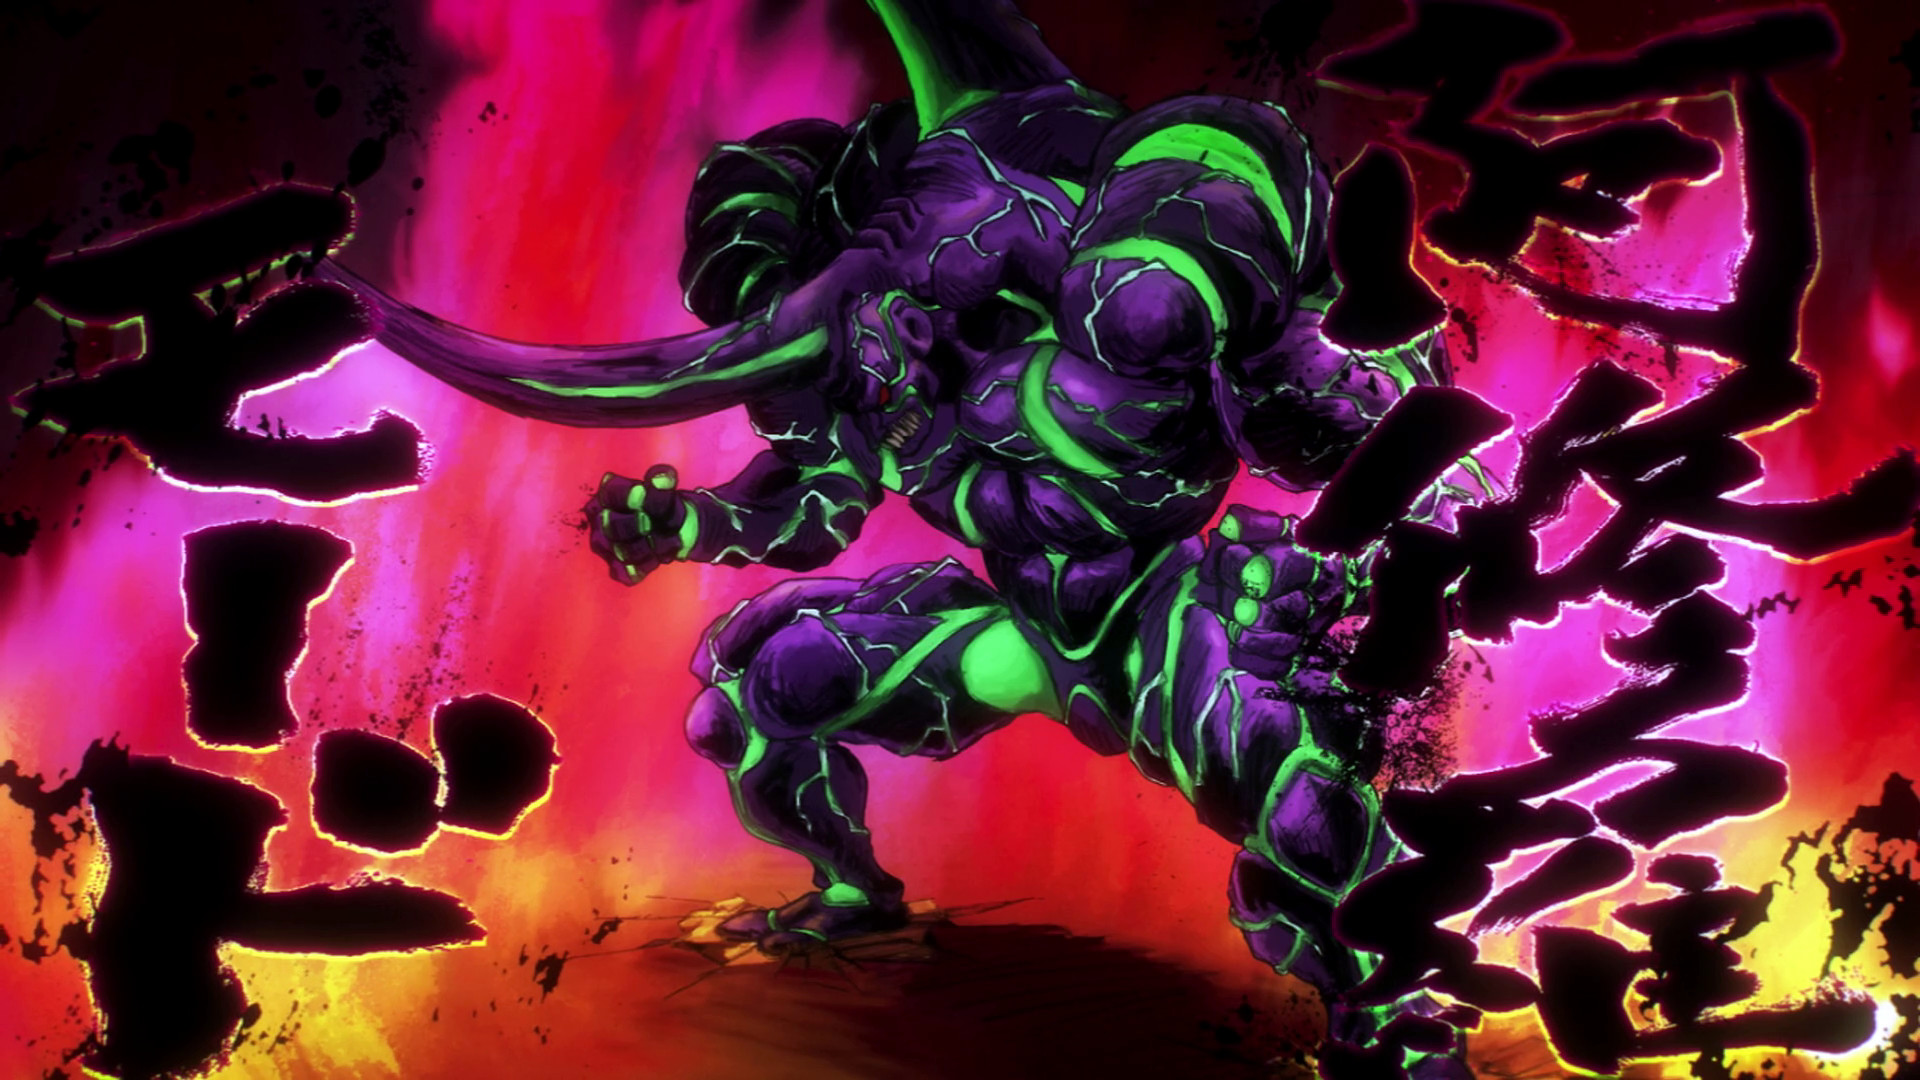 2 Carnage Kabuto (One-Punch Man) HD Wallpapers   Backgrounds – Wallpaper  Abyss